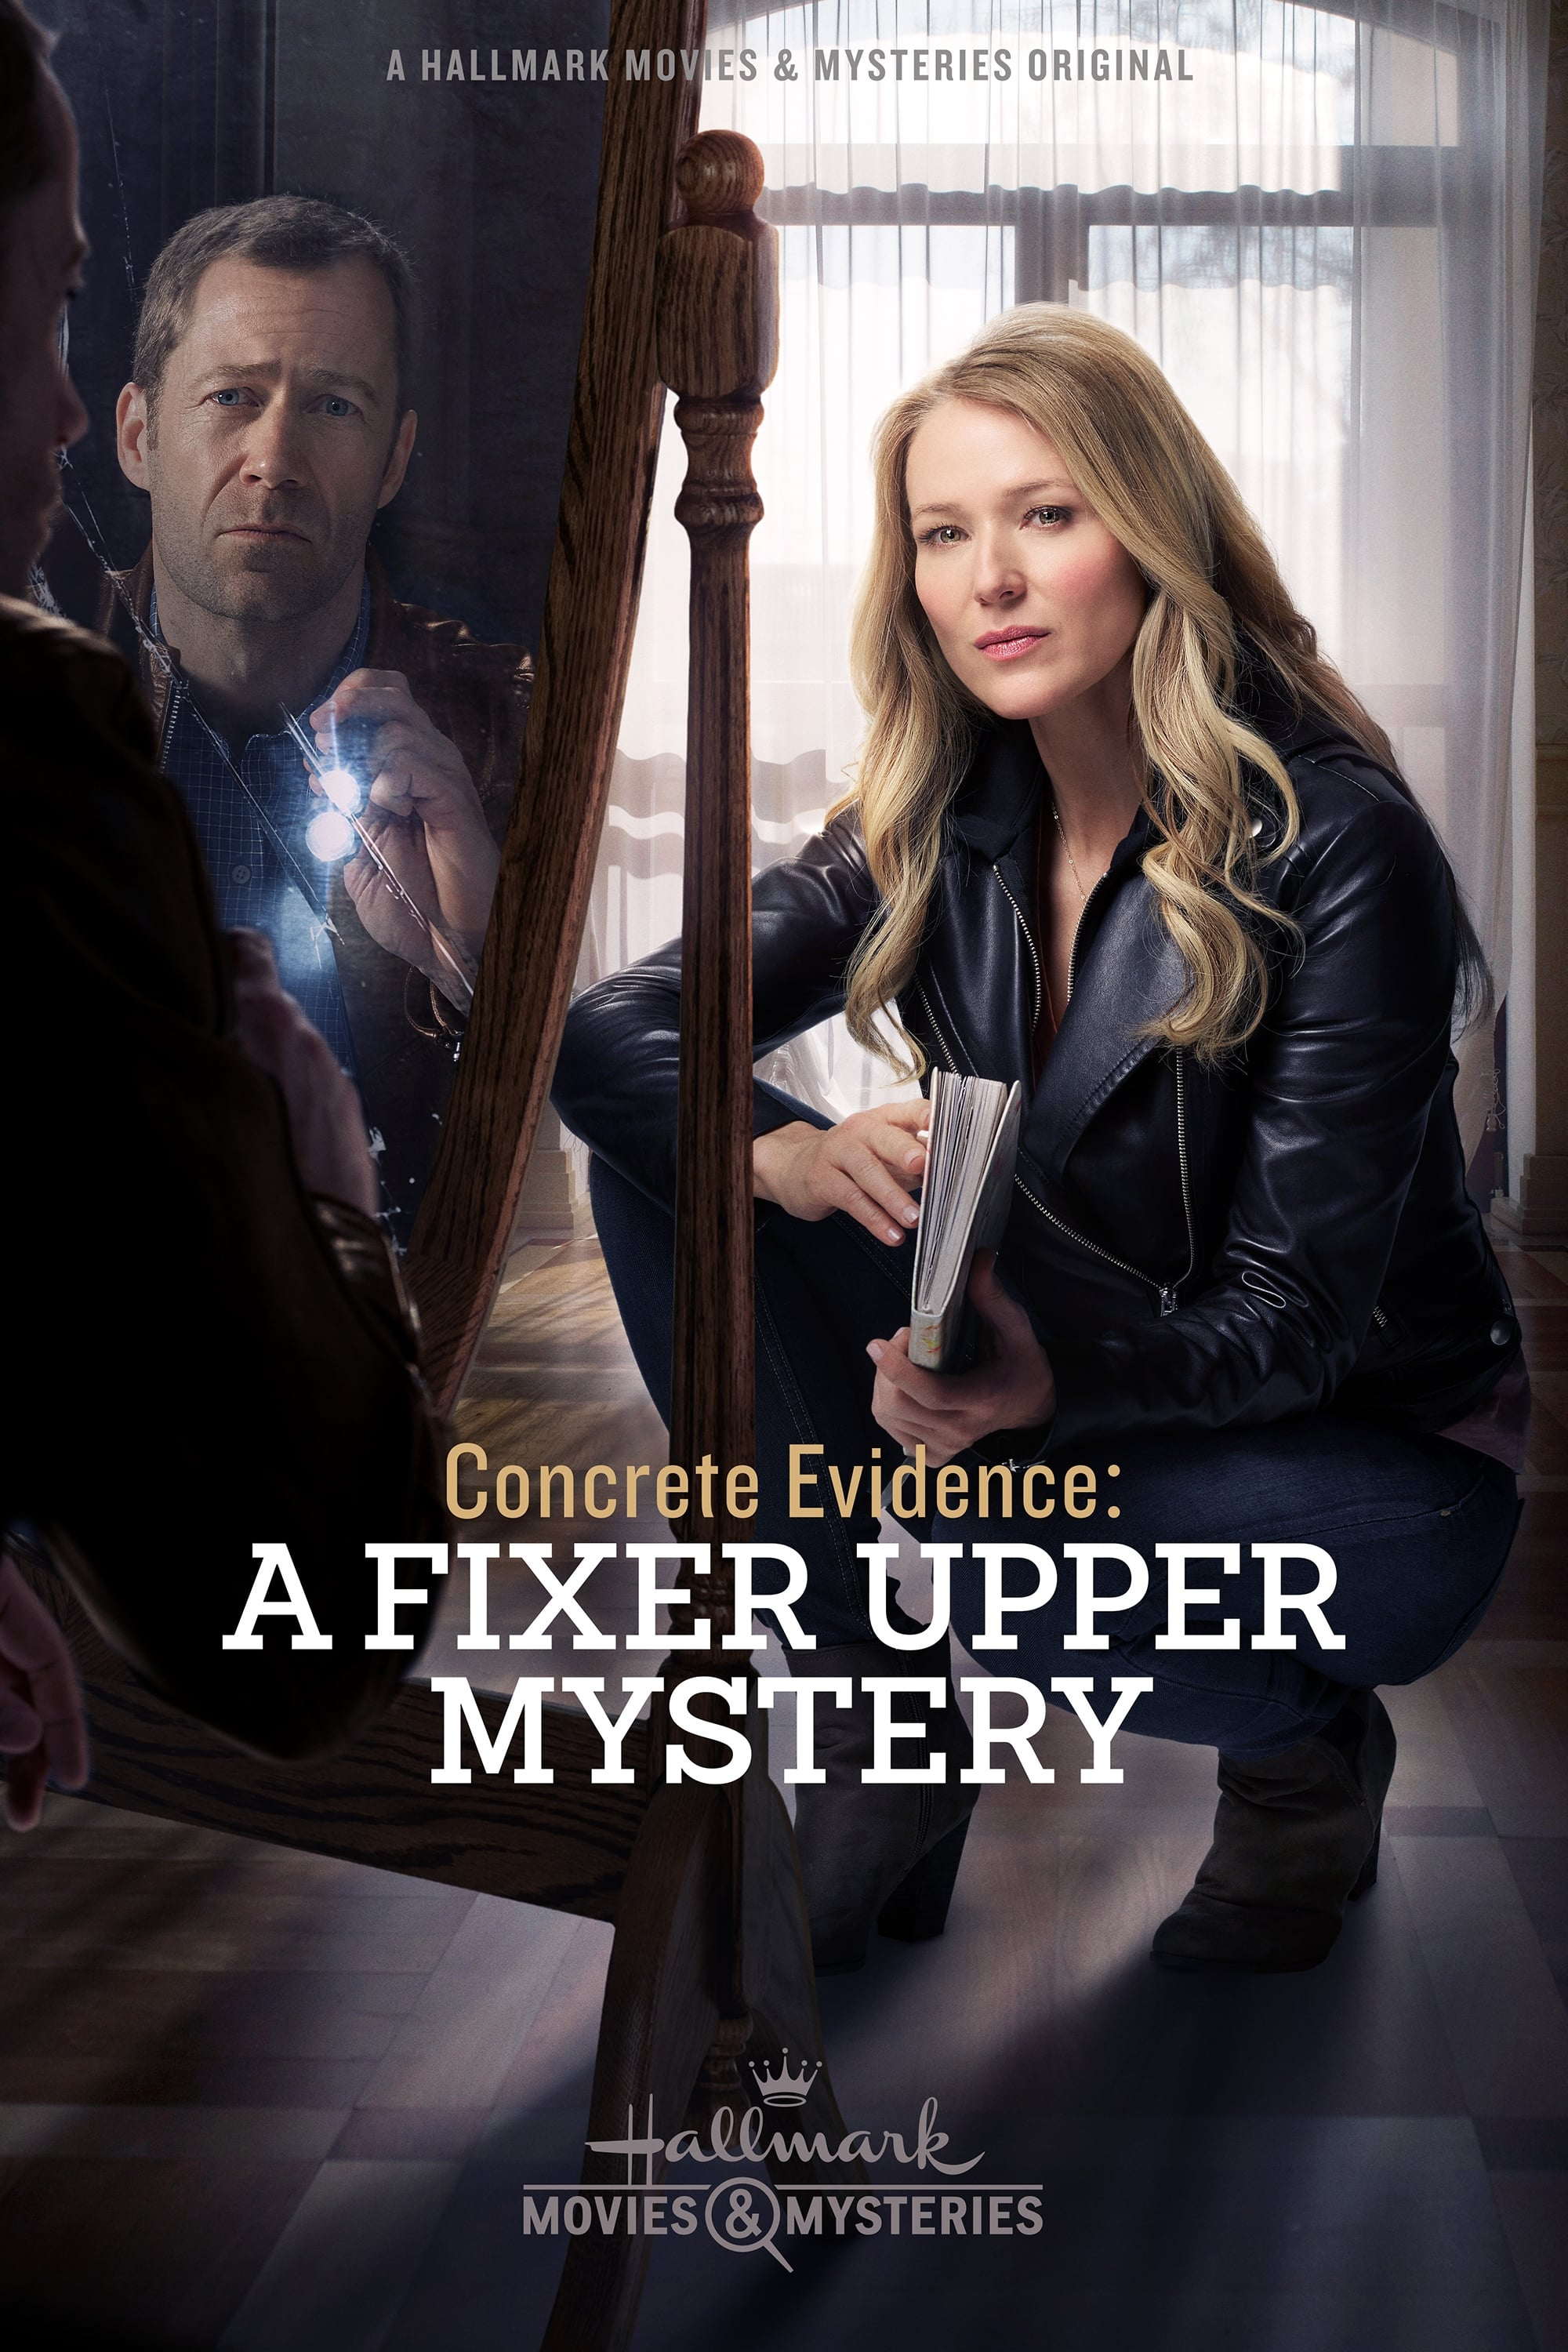 Concrete Evidence: A Fixer Upper Mystery (2017)